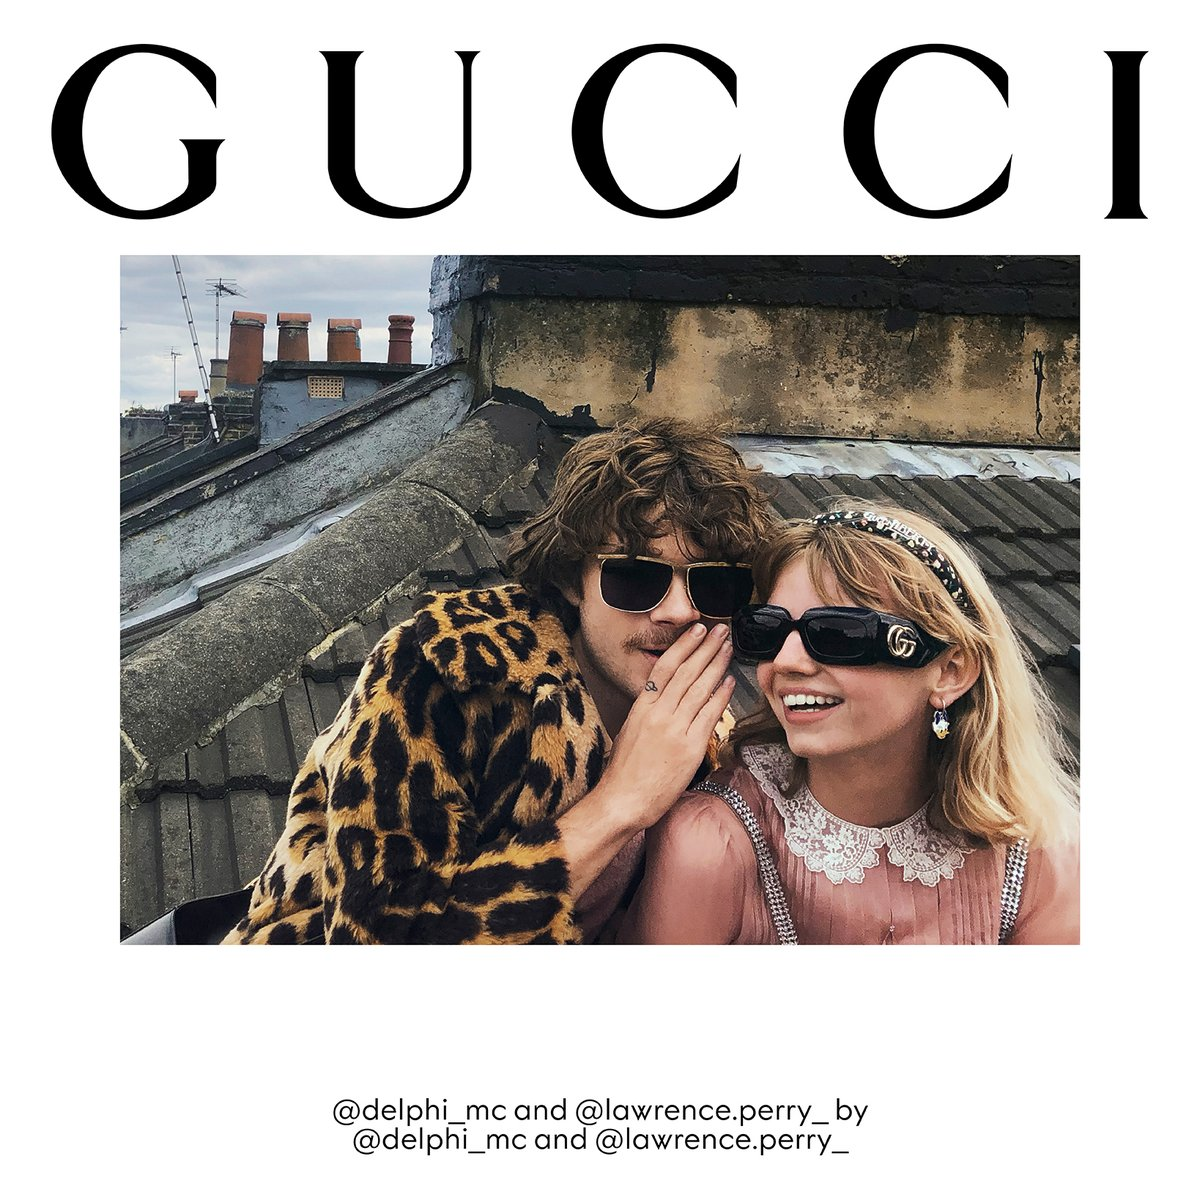 #gift #luxury New #GucciEyewear shades featuring House motifs like the Interlocking G detail feature in #GucciTheRitual. A portfolio of self-portraits shot by models, the #GucciFW20 campaign is a hymn to freedom. Discover more https://t.co/s0X78CE07U.  #… https://t.co/ZSjaLVzRIE